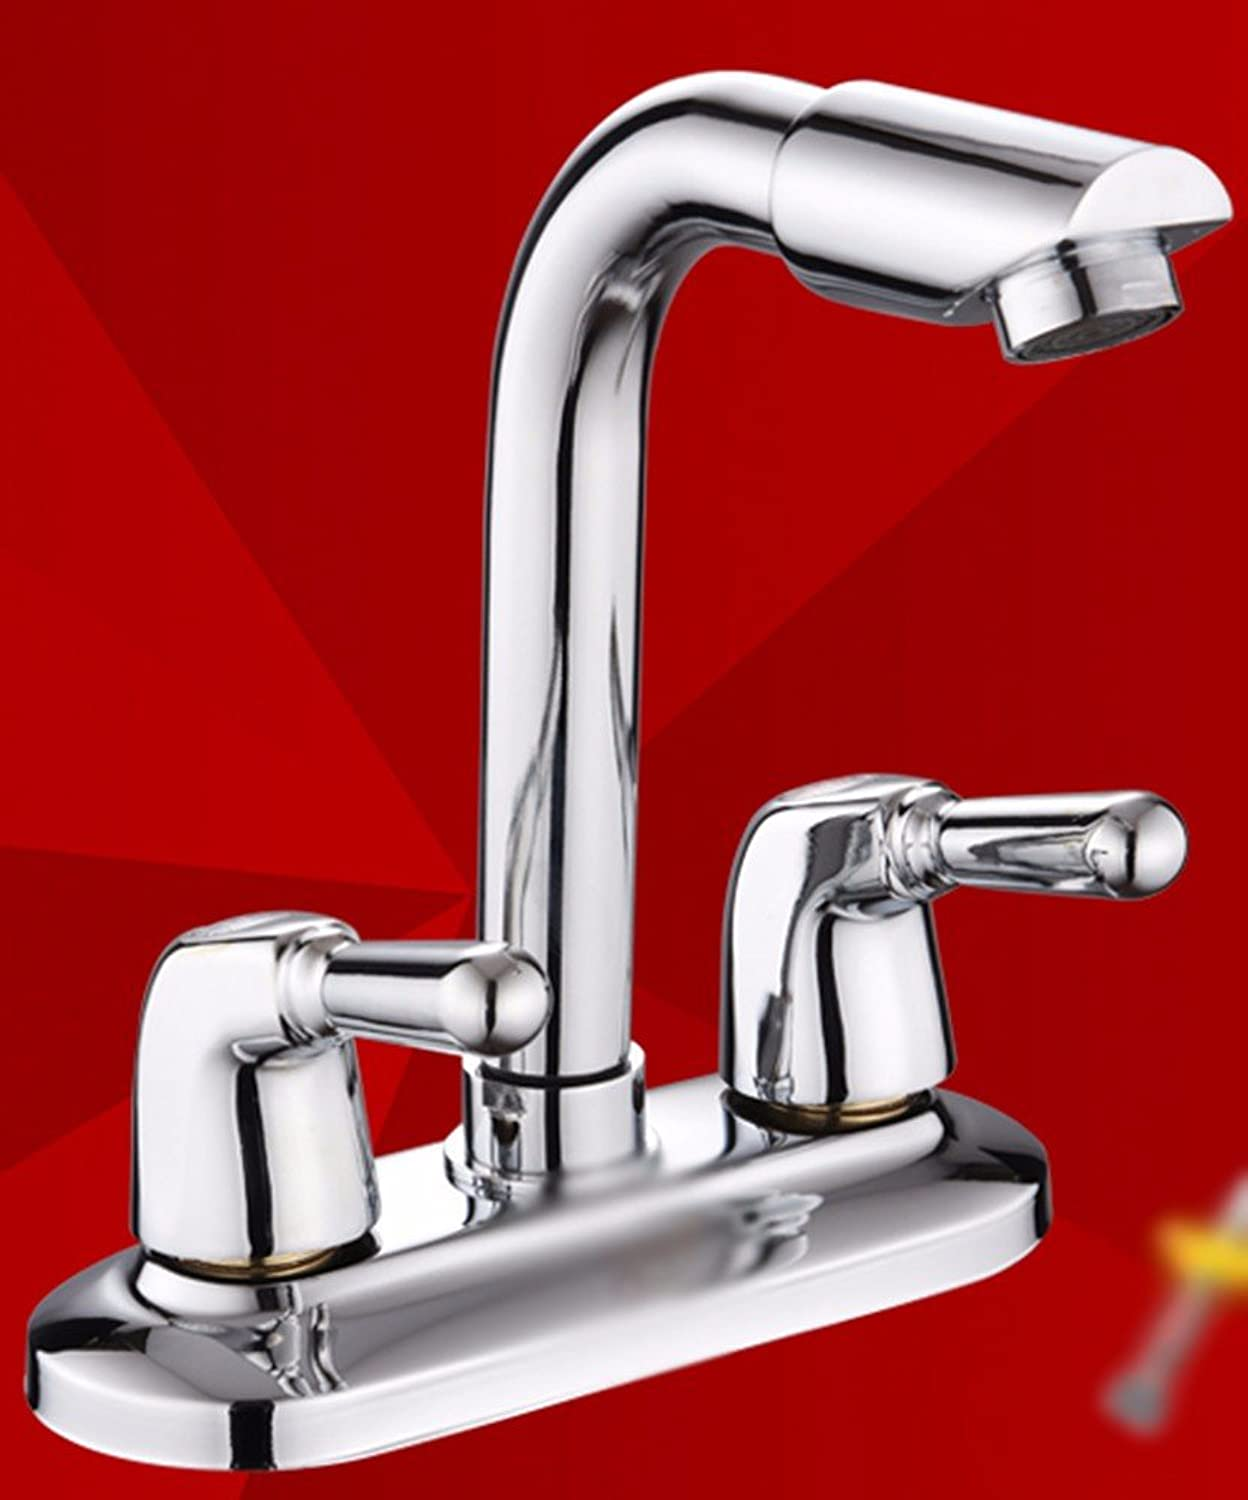 Hlluya Professional Sink Mixer Tap Kitchen Faucet Brass, double, double, hot and cold, bath, Washbasin Faucet 3